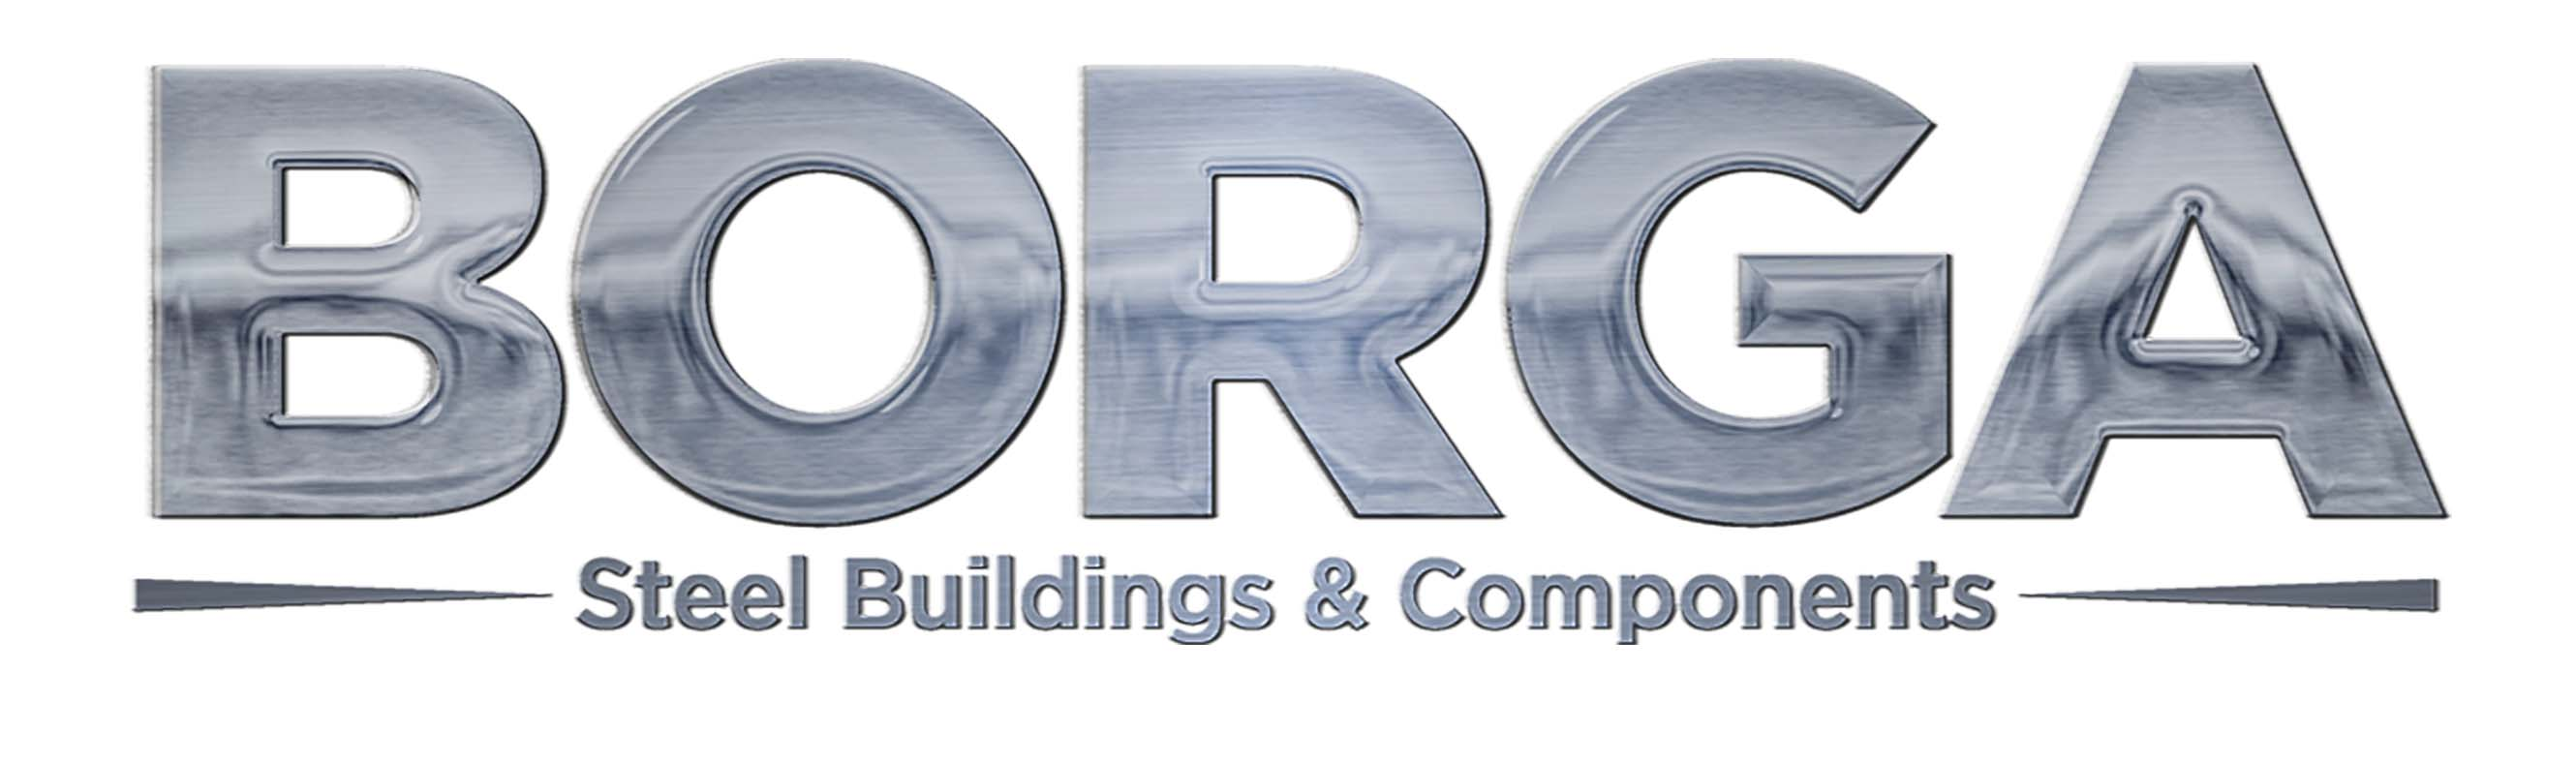 Borga steel buildings components logo